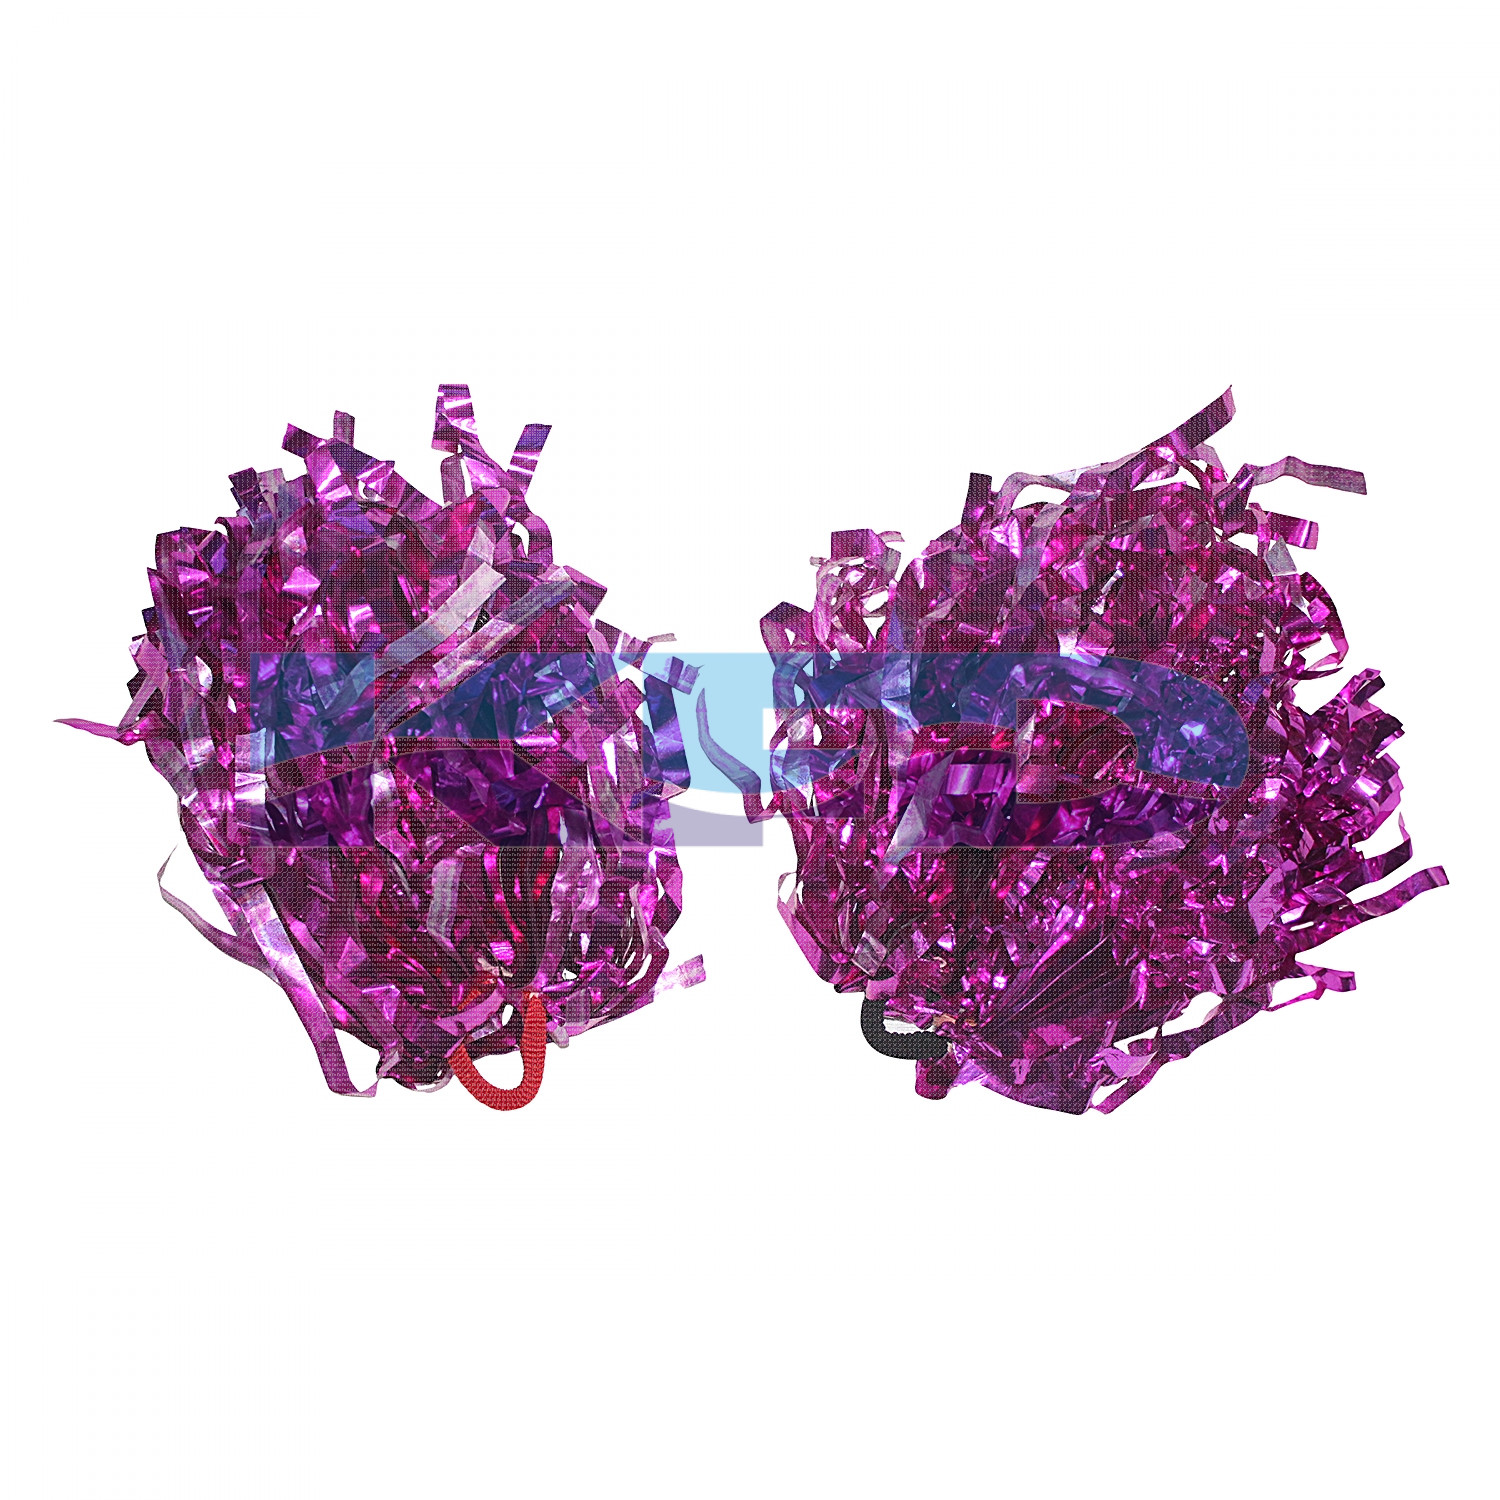 Mazanta Pompom Cheerleading Pompom Use For Dance Party/School Annual Function/Special Event/Cricket Dance/Birthday Party